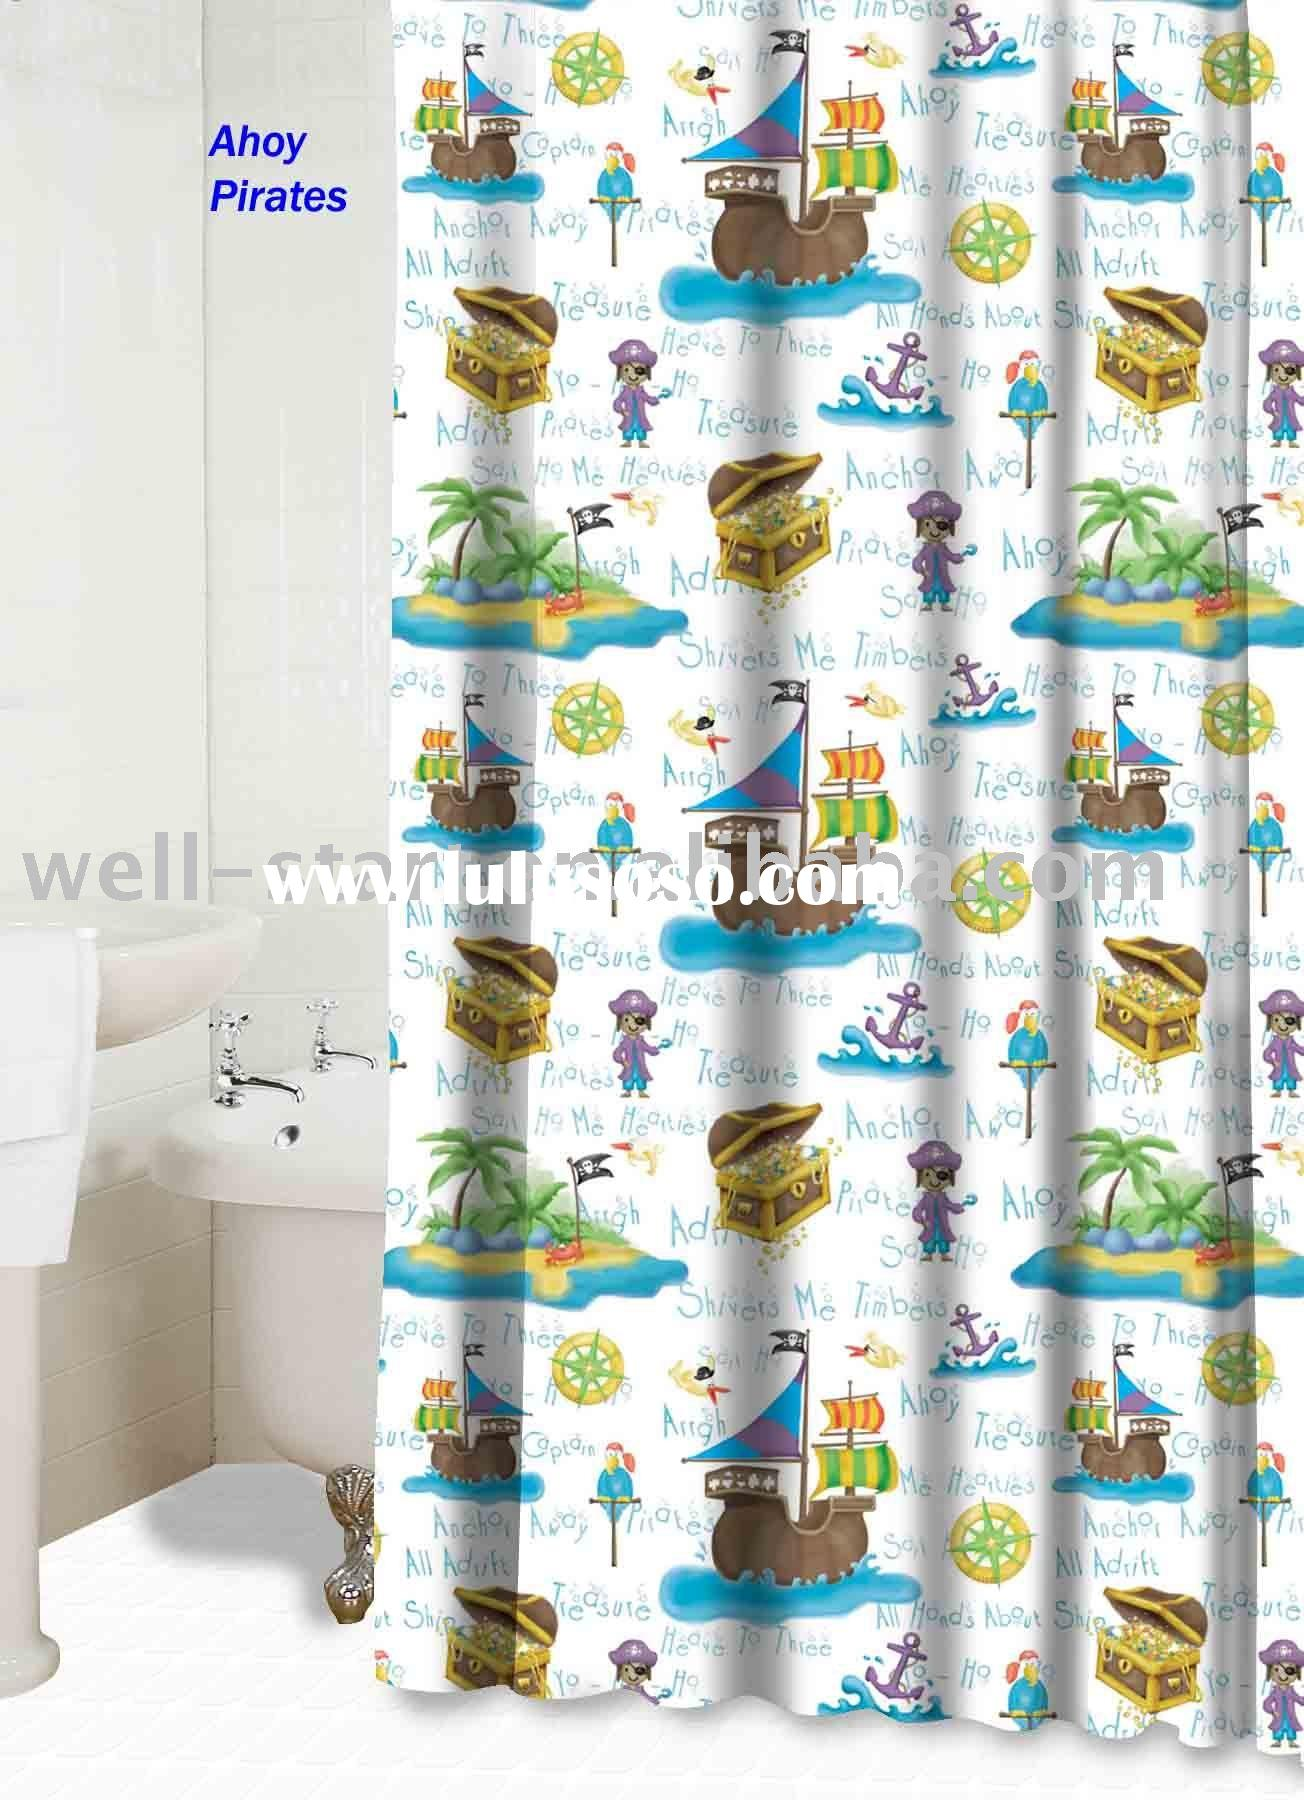 Ahoy Pirates printed polyester fabric shower curtain